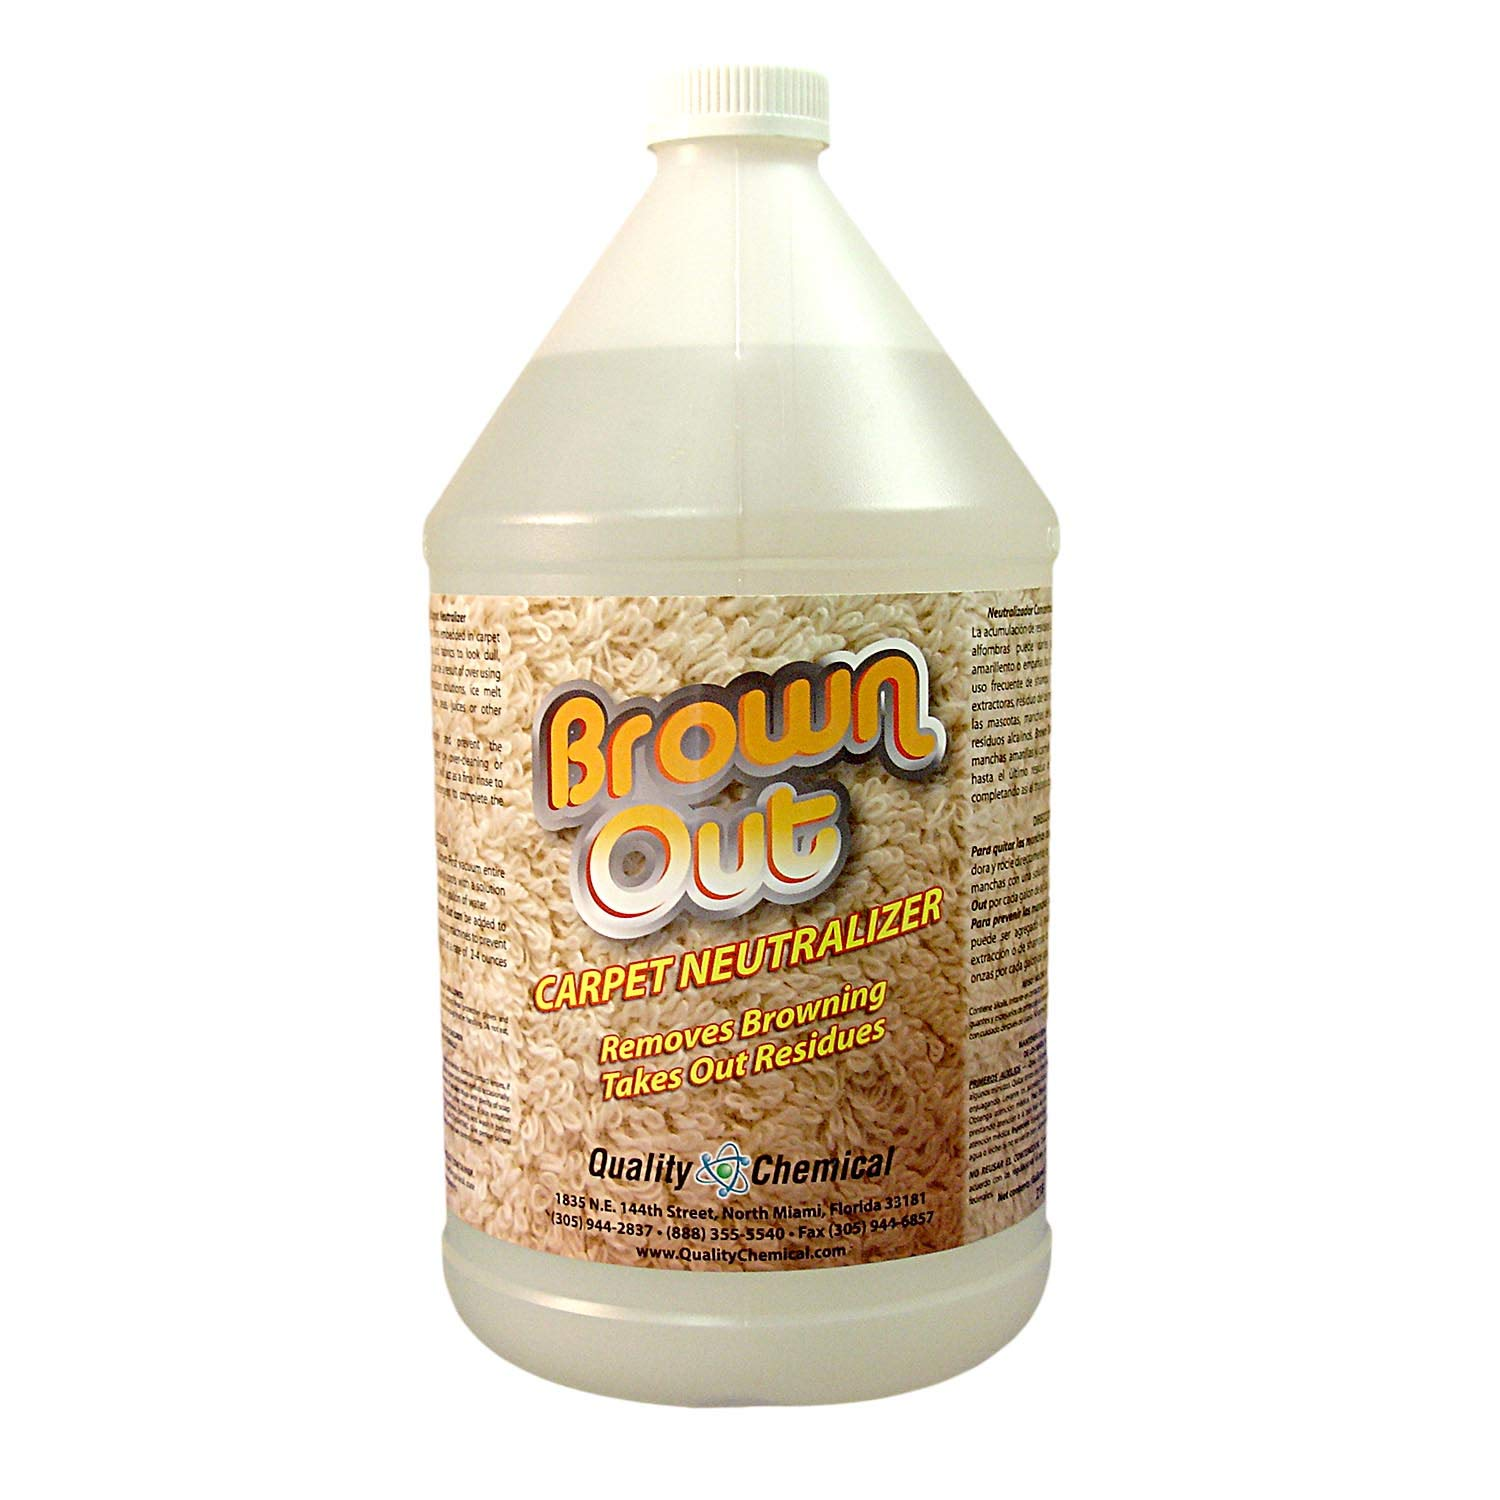 Brown Out Carpet Neutralizer and Stain Remover - 1 gallon